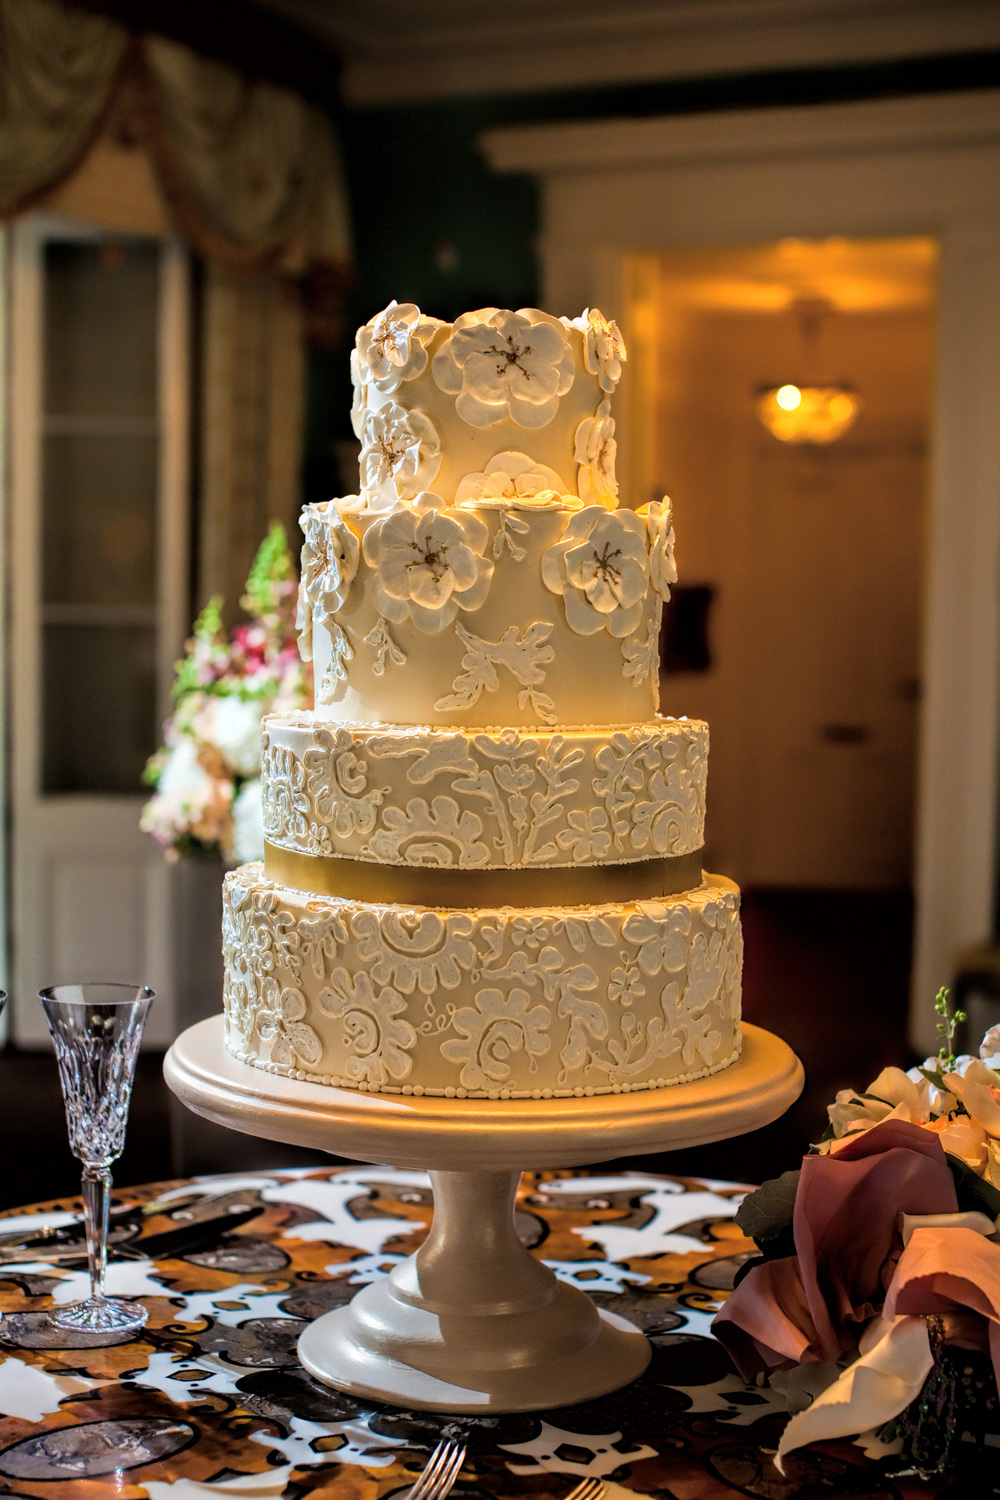 This wedding cake is actually from my wedding.  The amazingly talented  Jim Smeal  did this cake and hand did the lace to replicate my veil, which my Mom wore on her wedding day.  I've never seen such talent on a butter cream cake than his cakes!